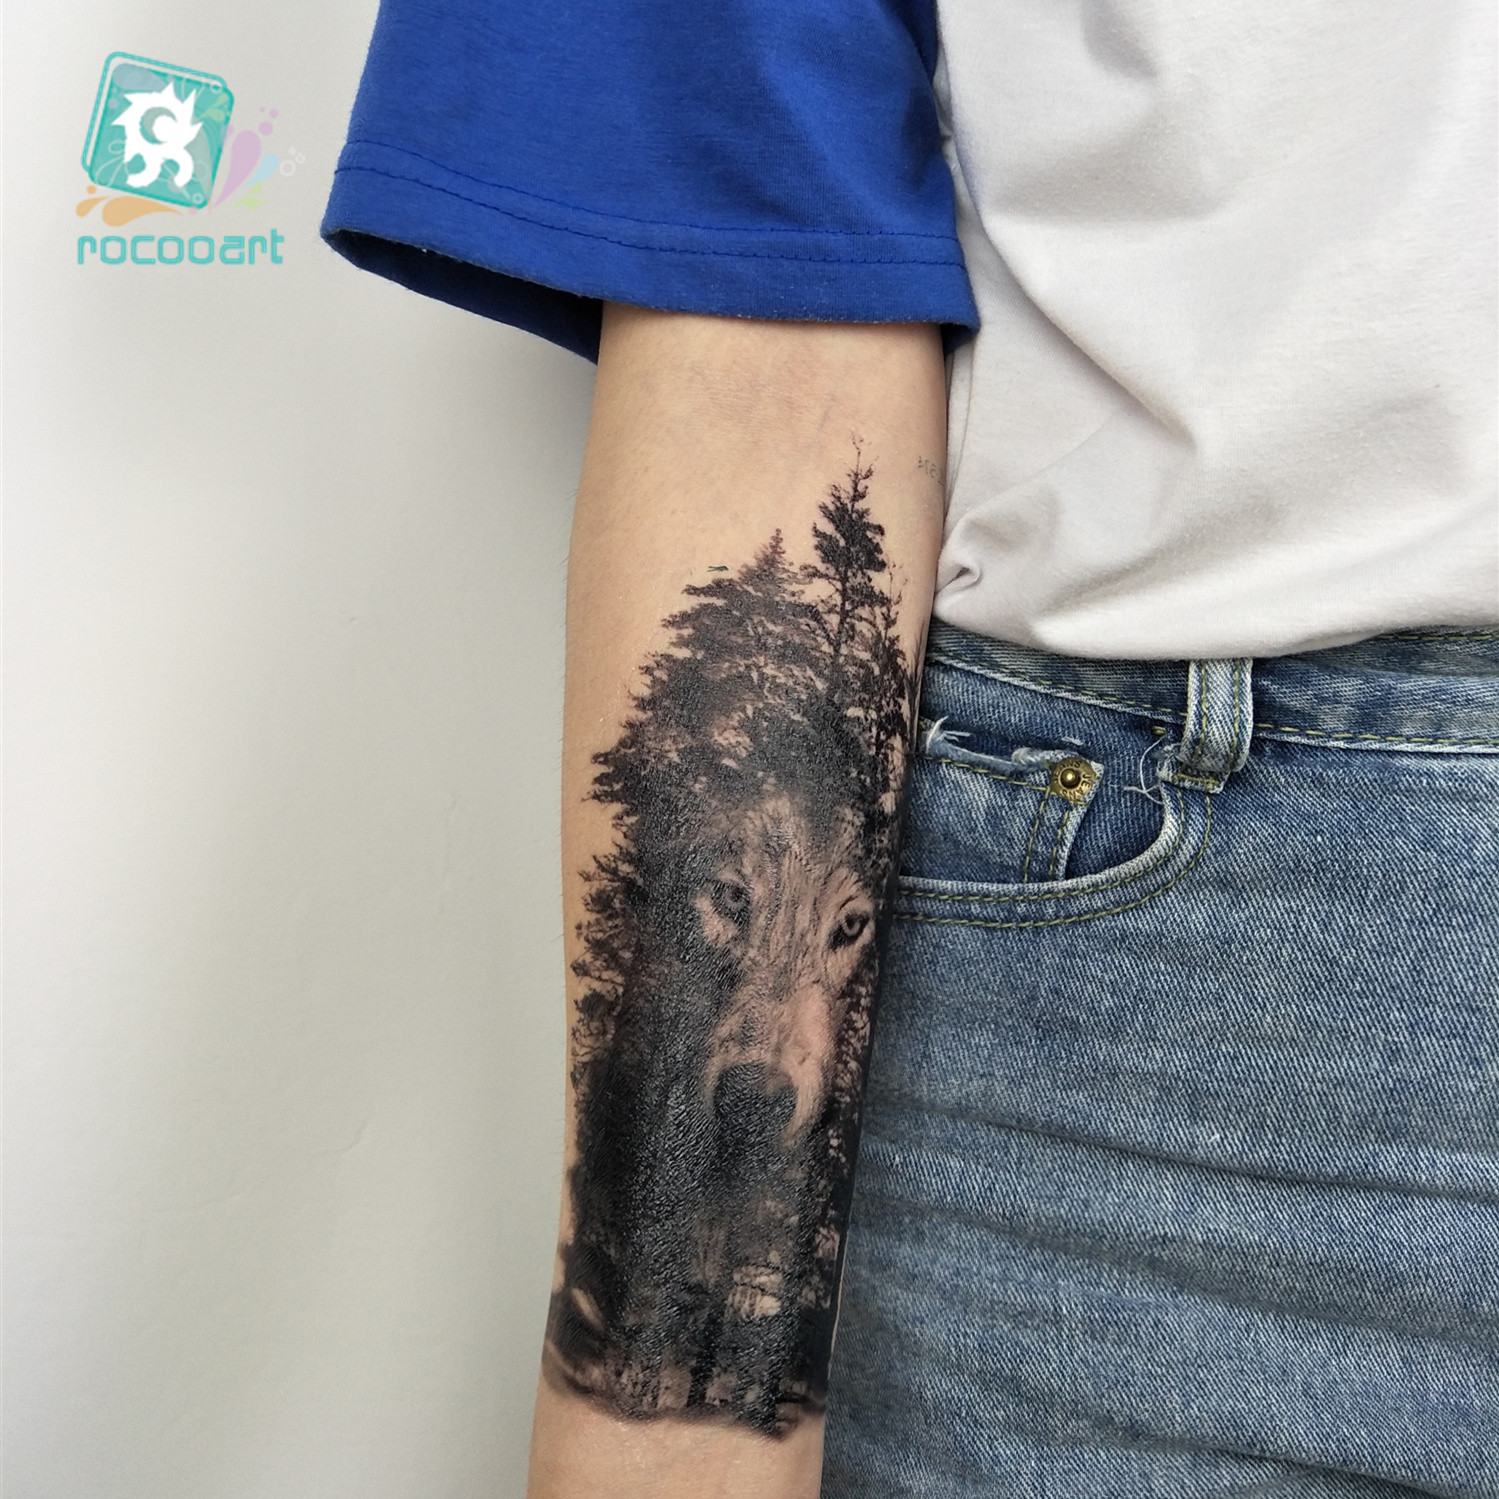 Rocooart Large Tattoo Sticker Wolf In Trees Fake Tattoo Taty Henna Tatouage Body Art Temporary Tattoo Stickers For Women